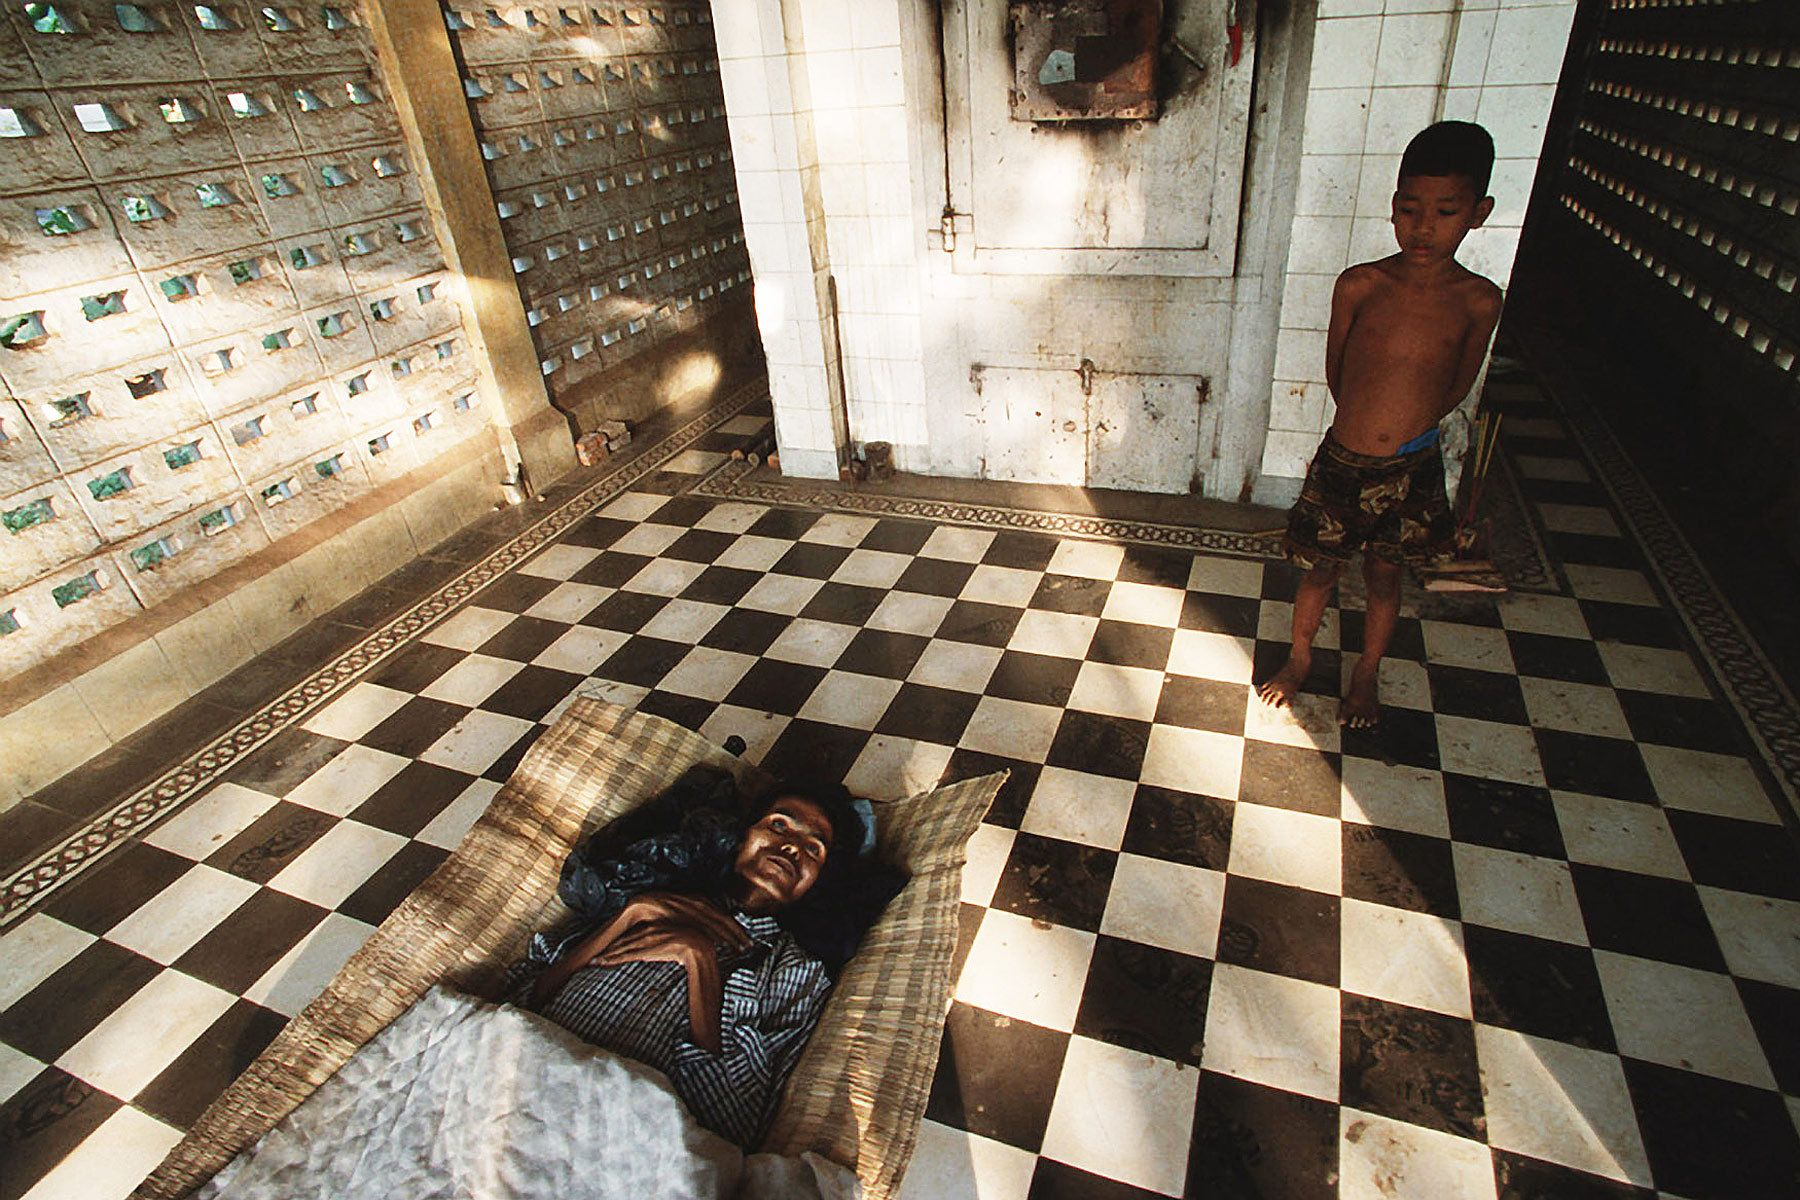 A boy waits for cremation of his father, who died in Aids ward. He became an orphan.